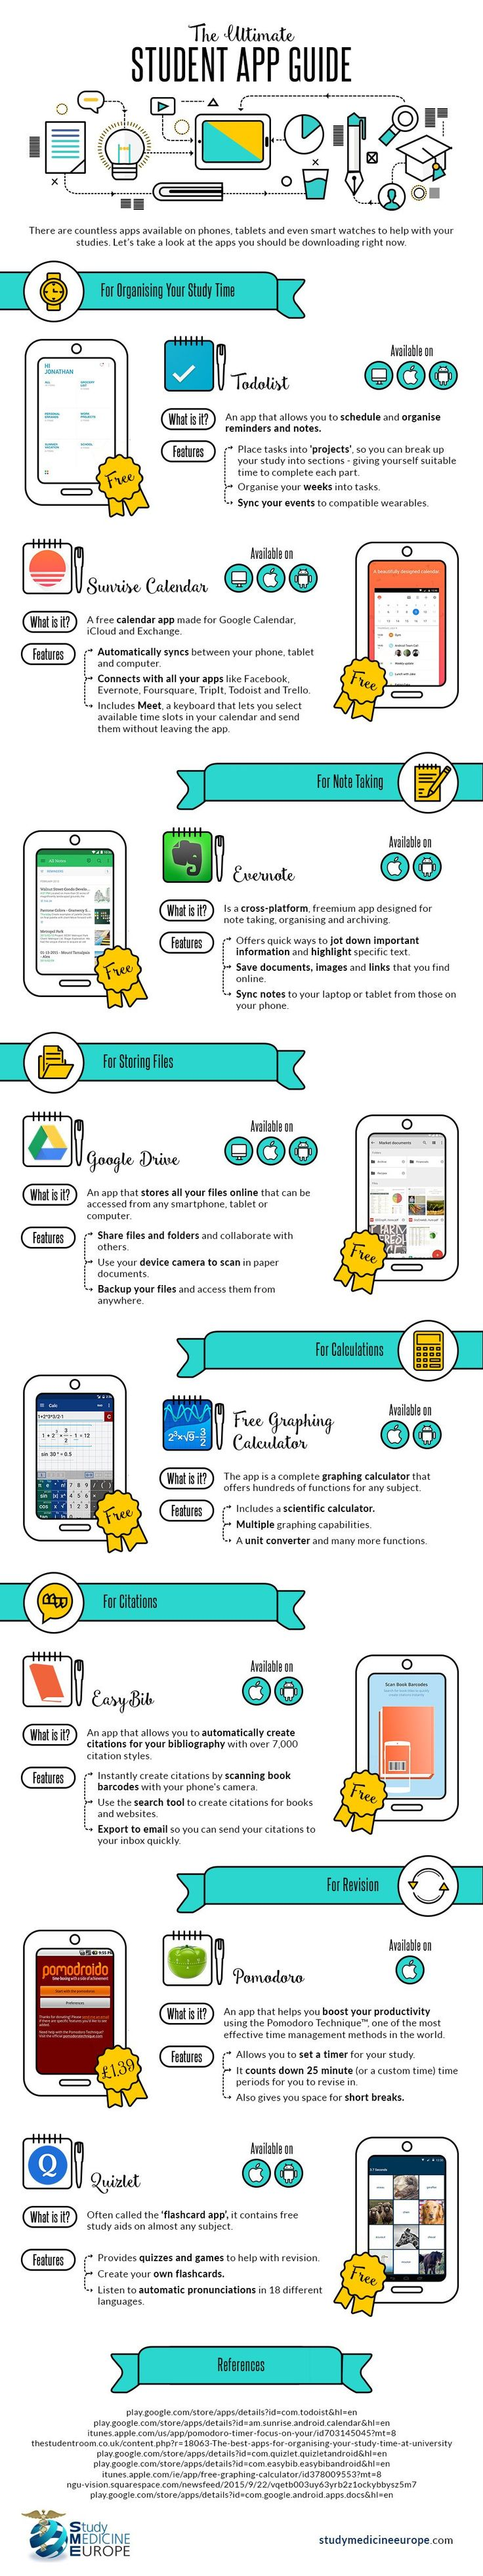 The Ultimate Student App Guide Infographic